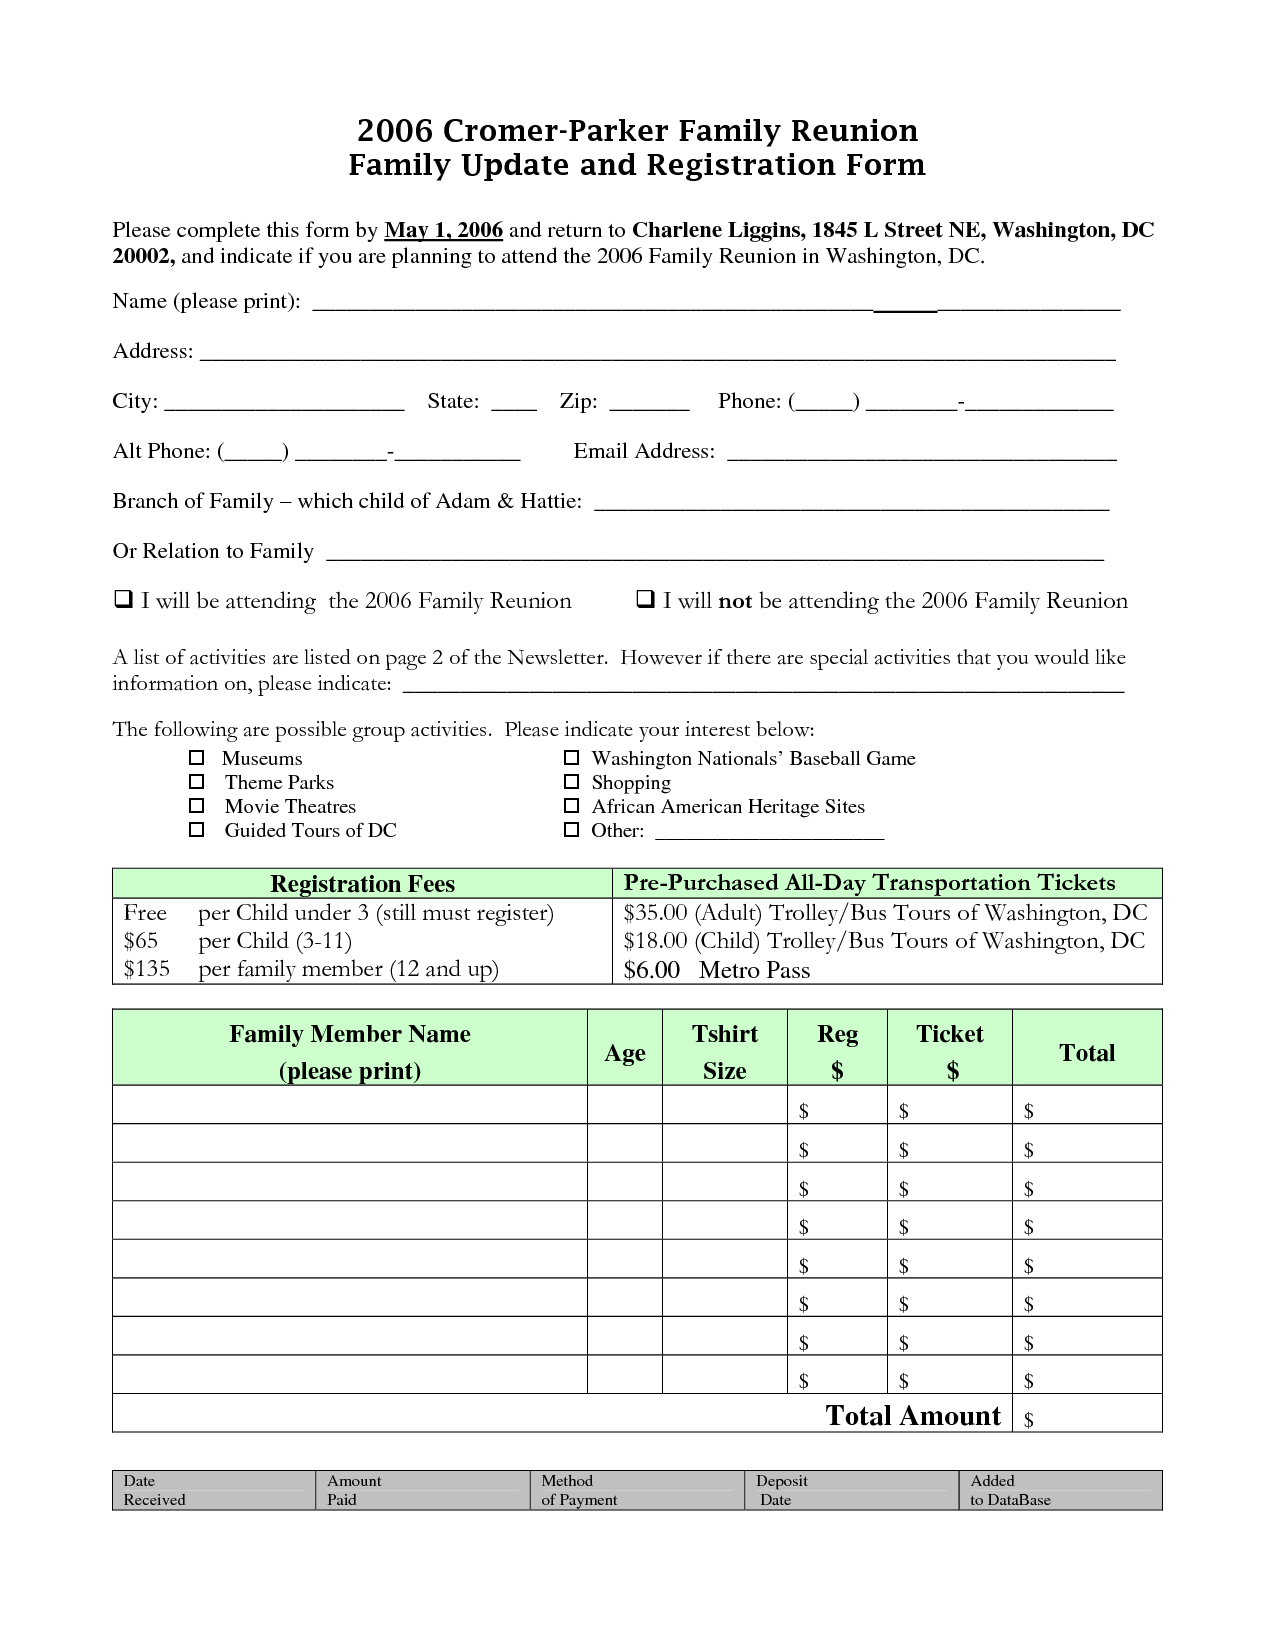 Family Reunion Planners | 2006 Cromer-Parker Family Reunion Family ...